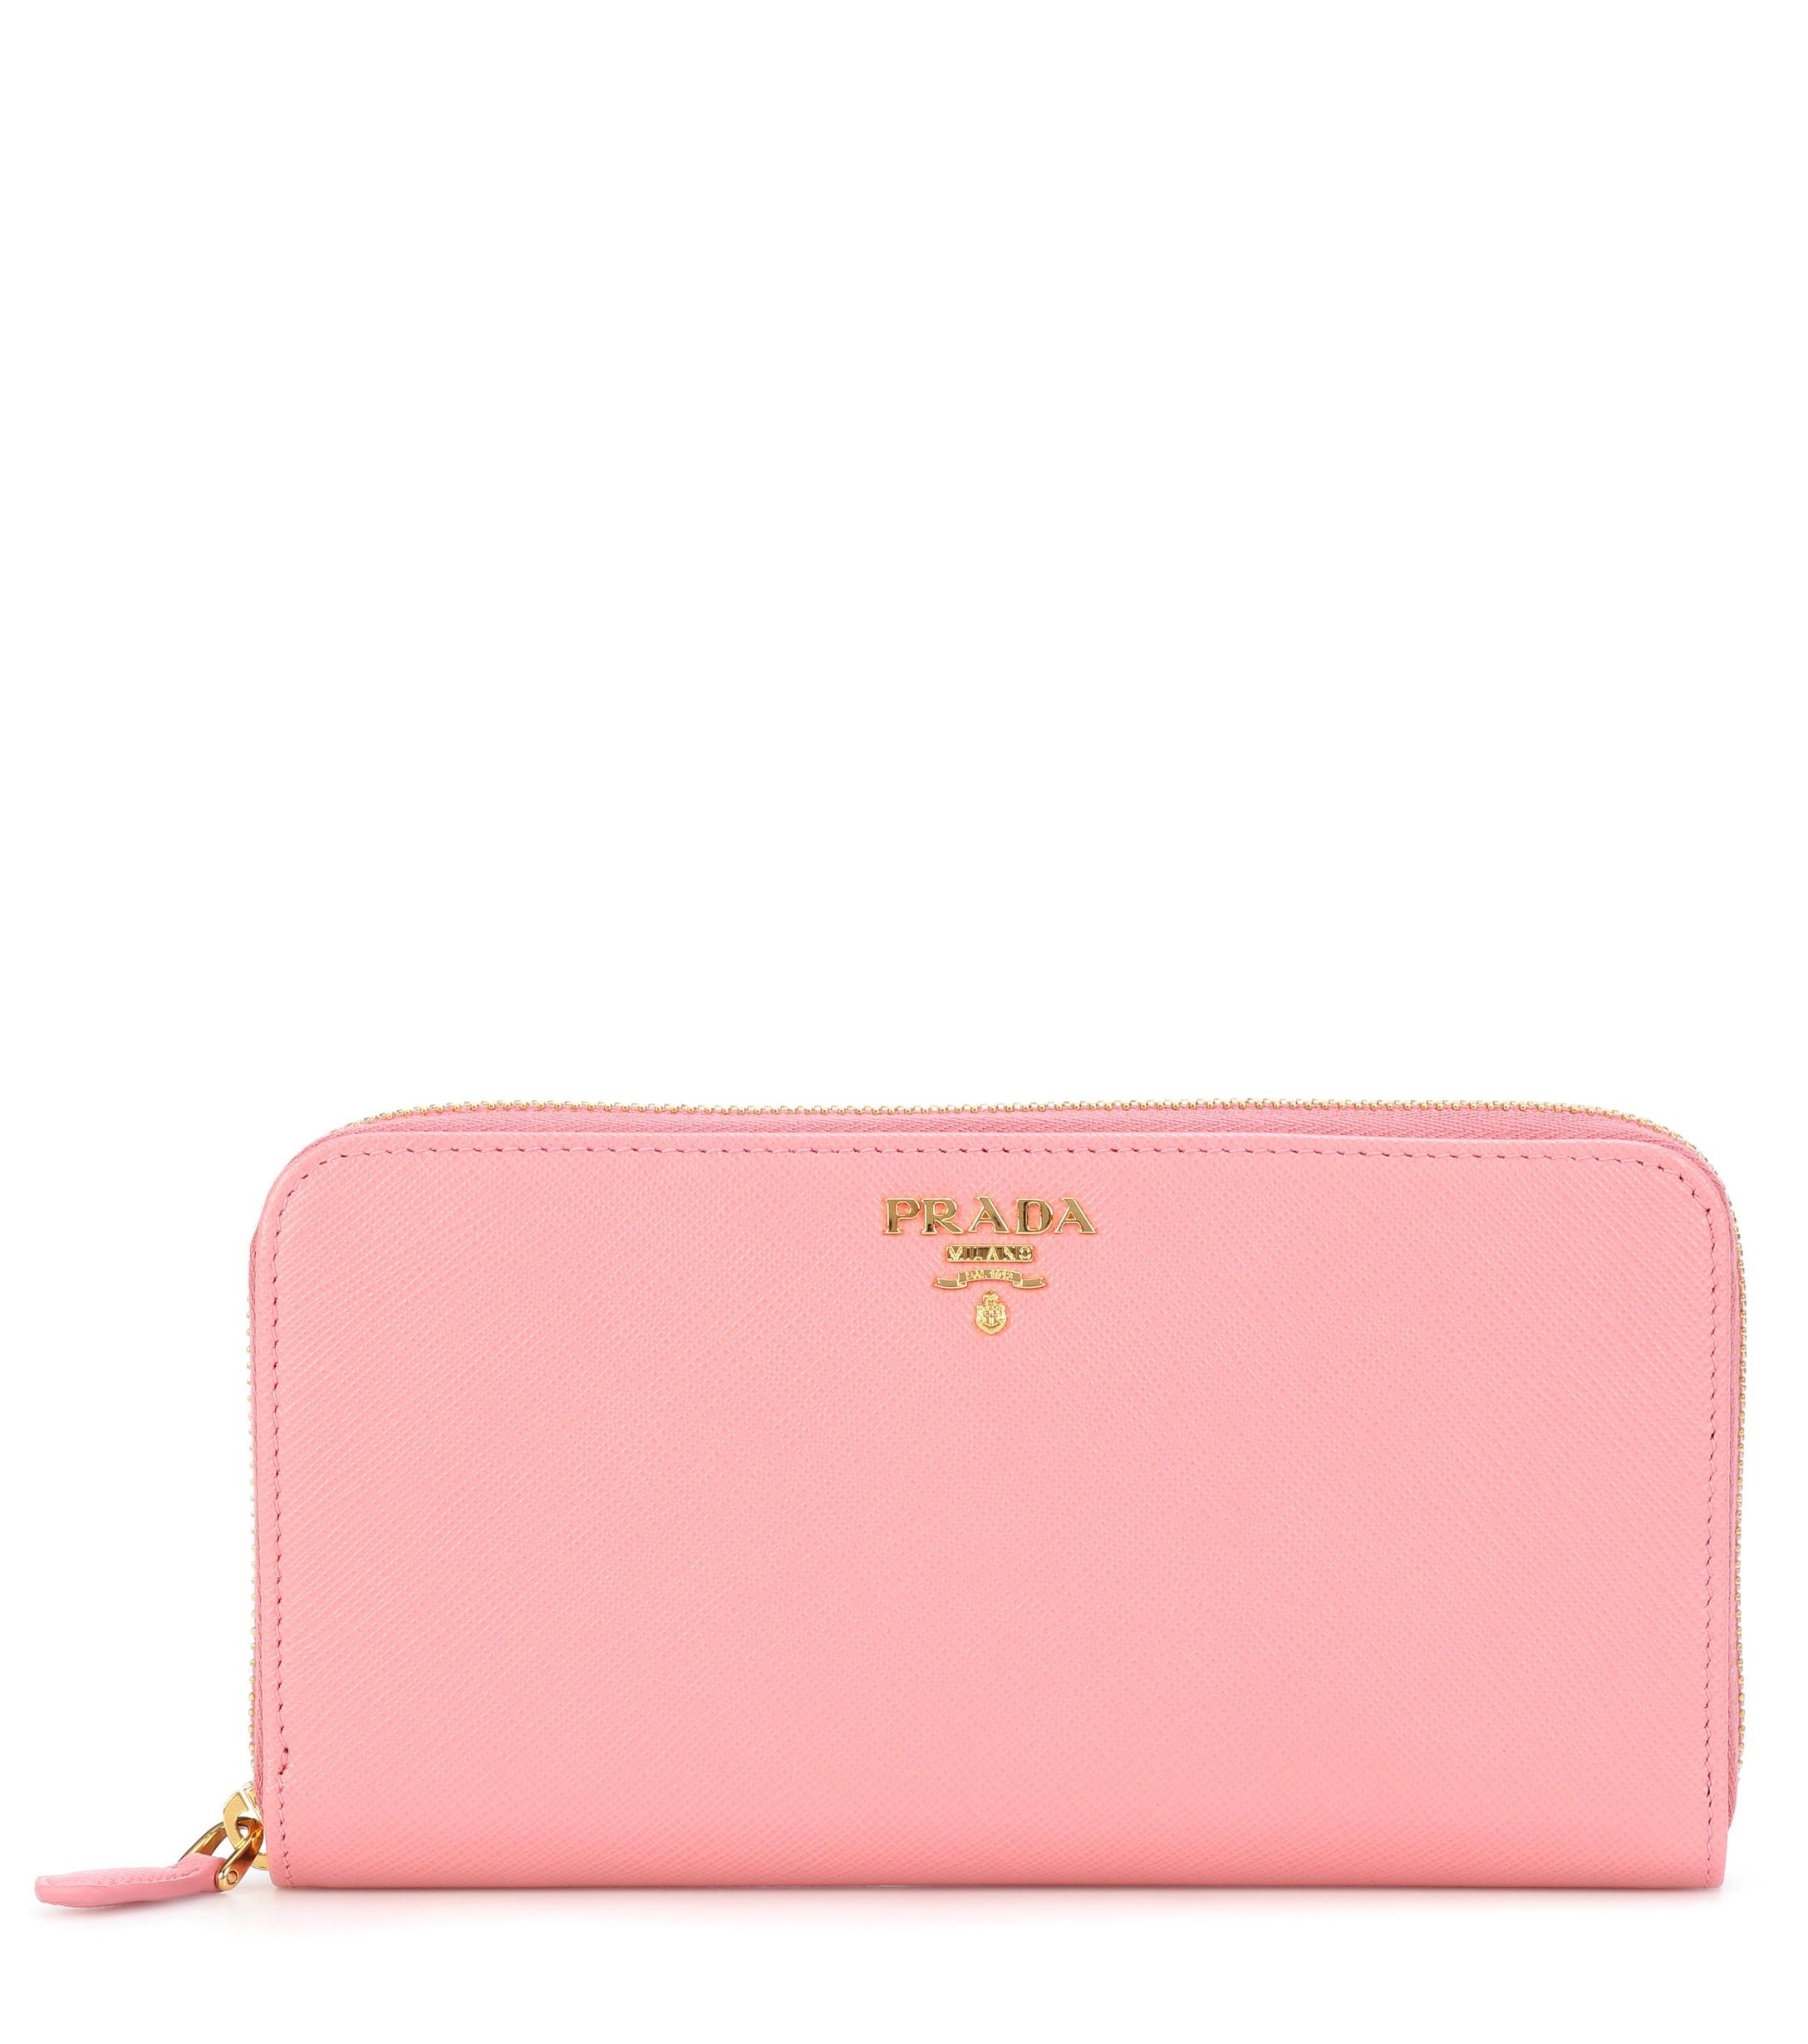 279f107a5ea38d Prada - Pink Saffiano Leather Zip-around Wallet - Lyst. View fullscreen